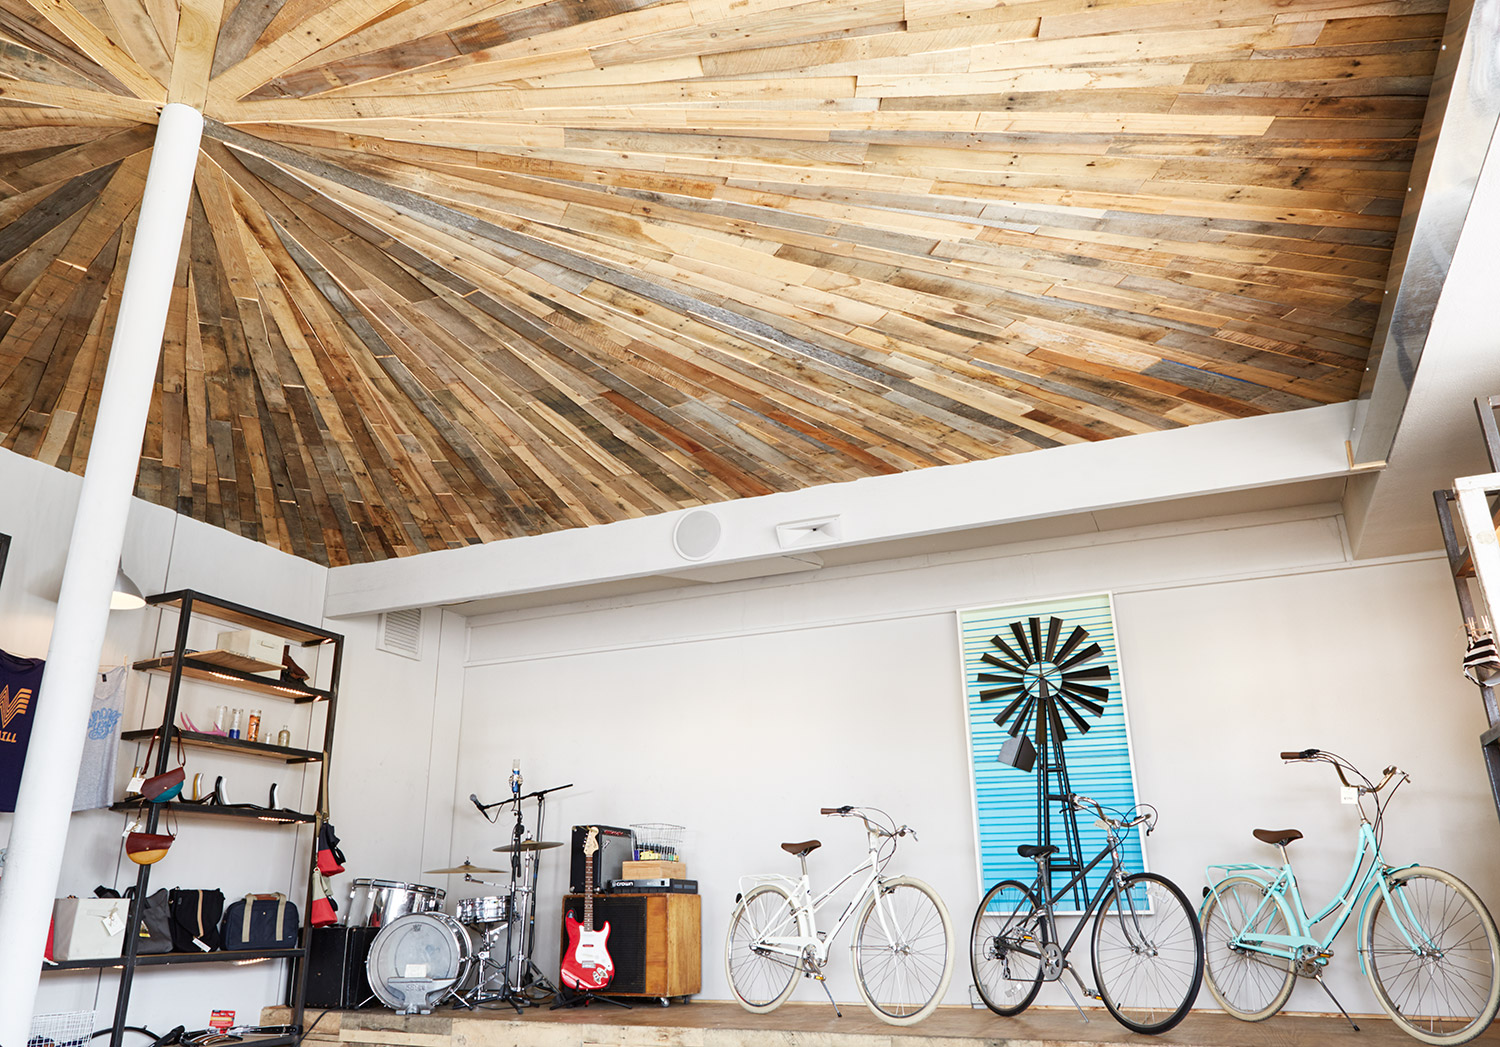 When Sarah and Aaron were building out the shop, Sarah drove all over town collecting old pallets and they created this cool ceiling out of the materials.